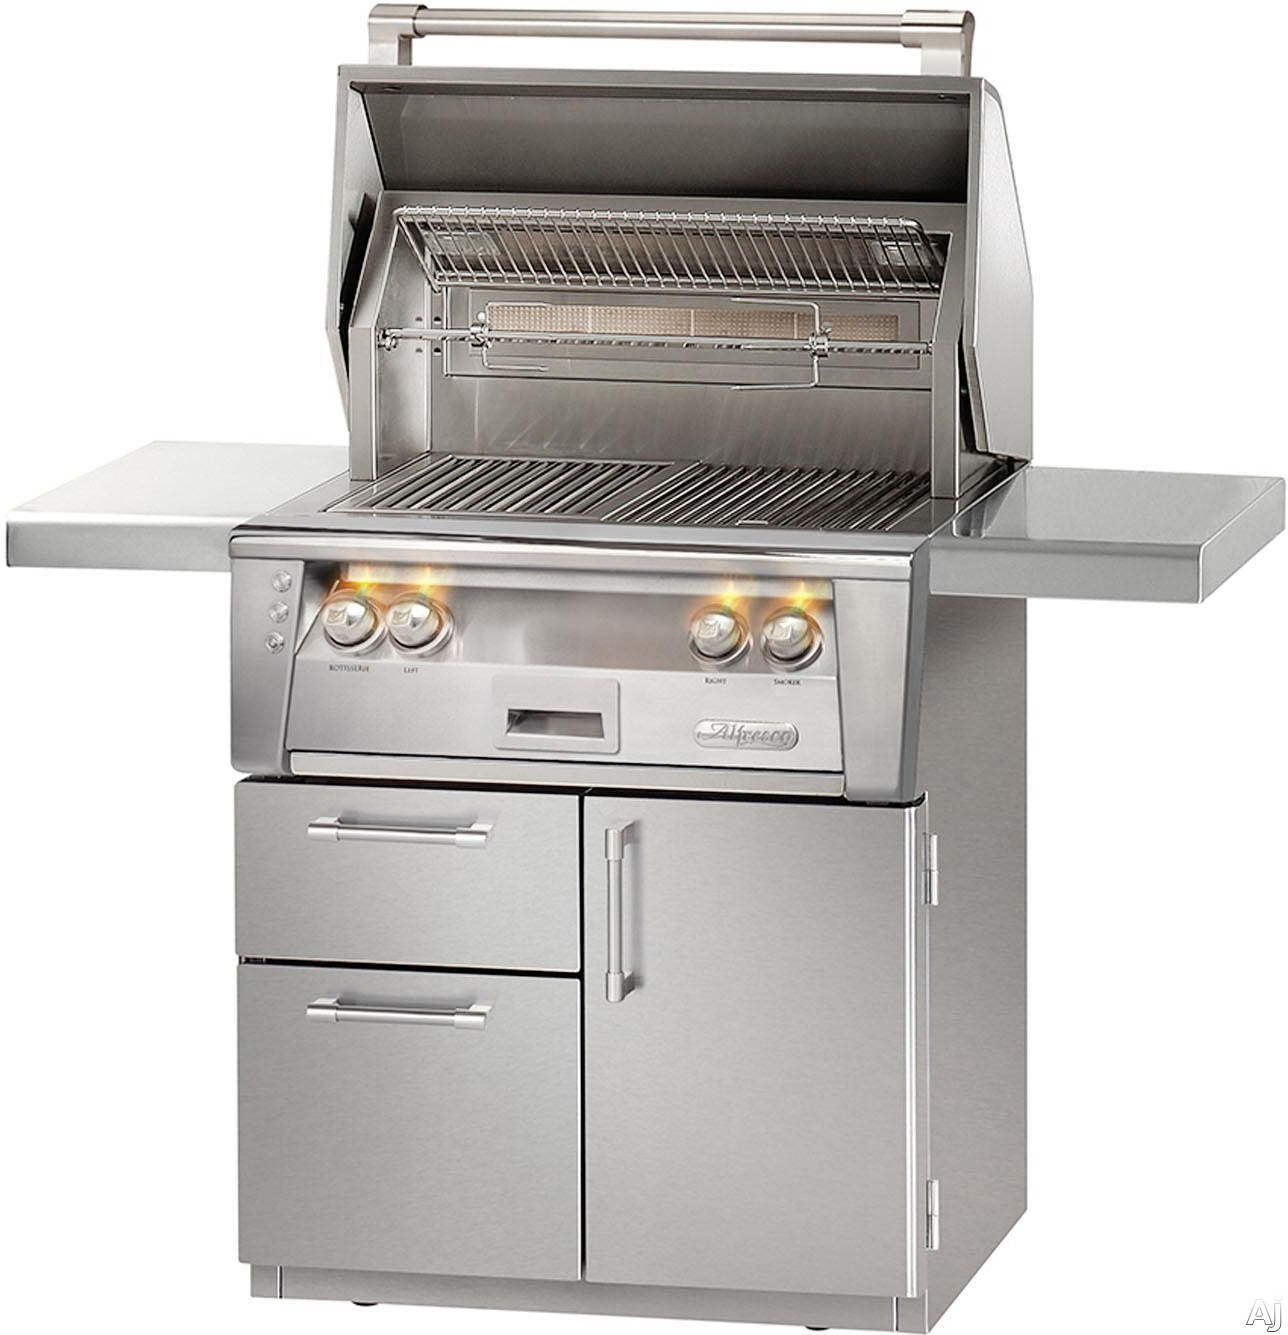 Alfresco ALXE30CDLP 30 Inch Grill with 542 sq. in. Grilling Surface, Two 27,500 BTU Burners, Integrated Rotisserie, Smoker and Herb Infuser System, 3-Position Warming Rack, Halogen Lighting and Deluxe